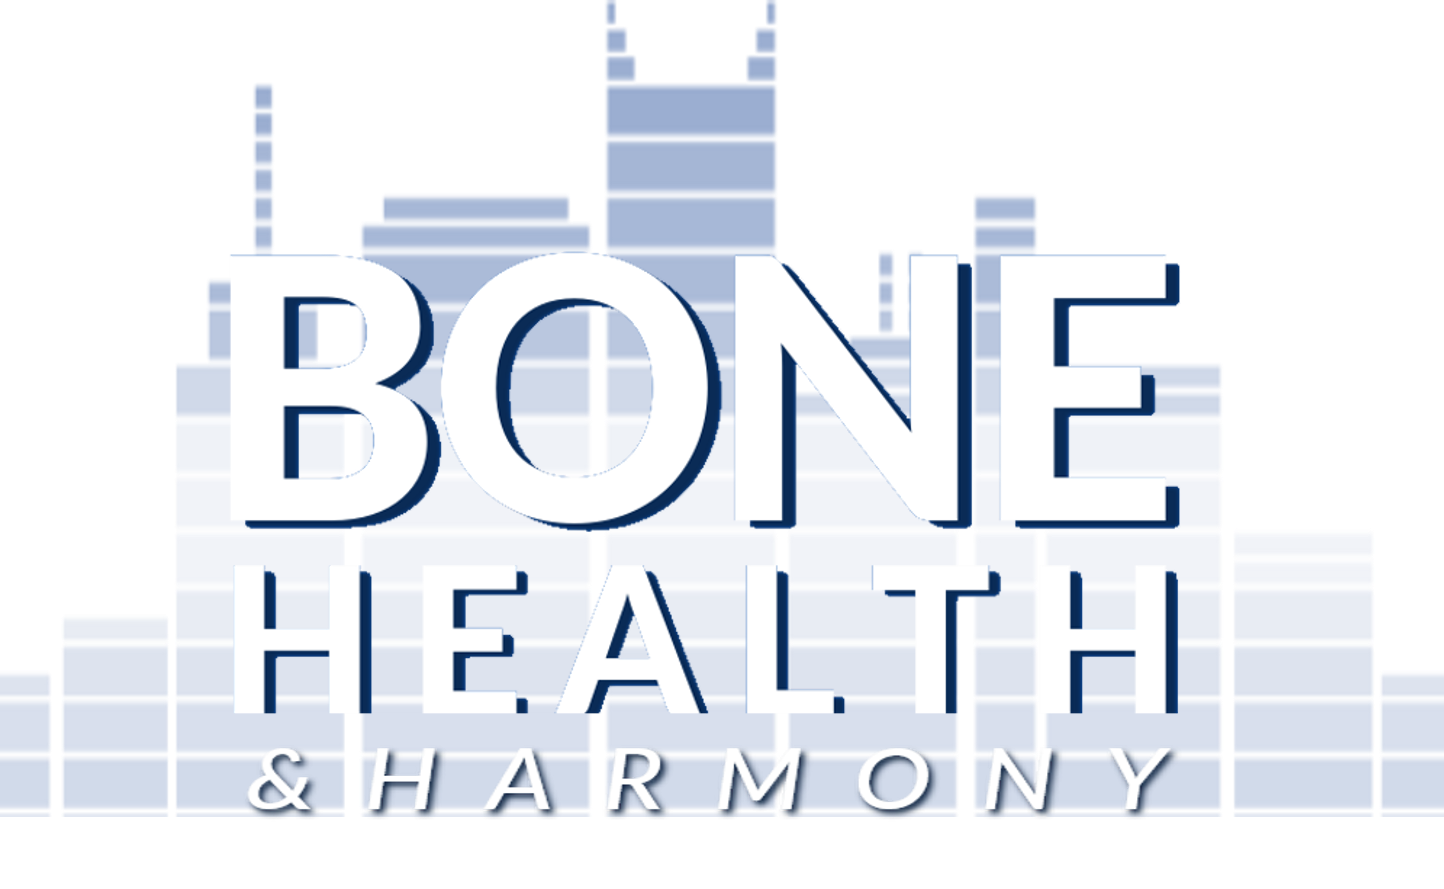 Bone Health and Harmony Joint Replacement Blog logo